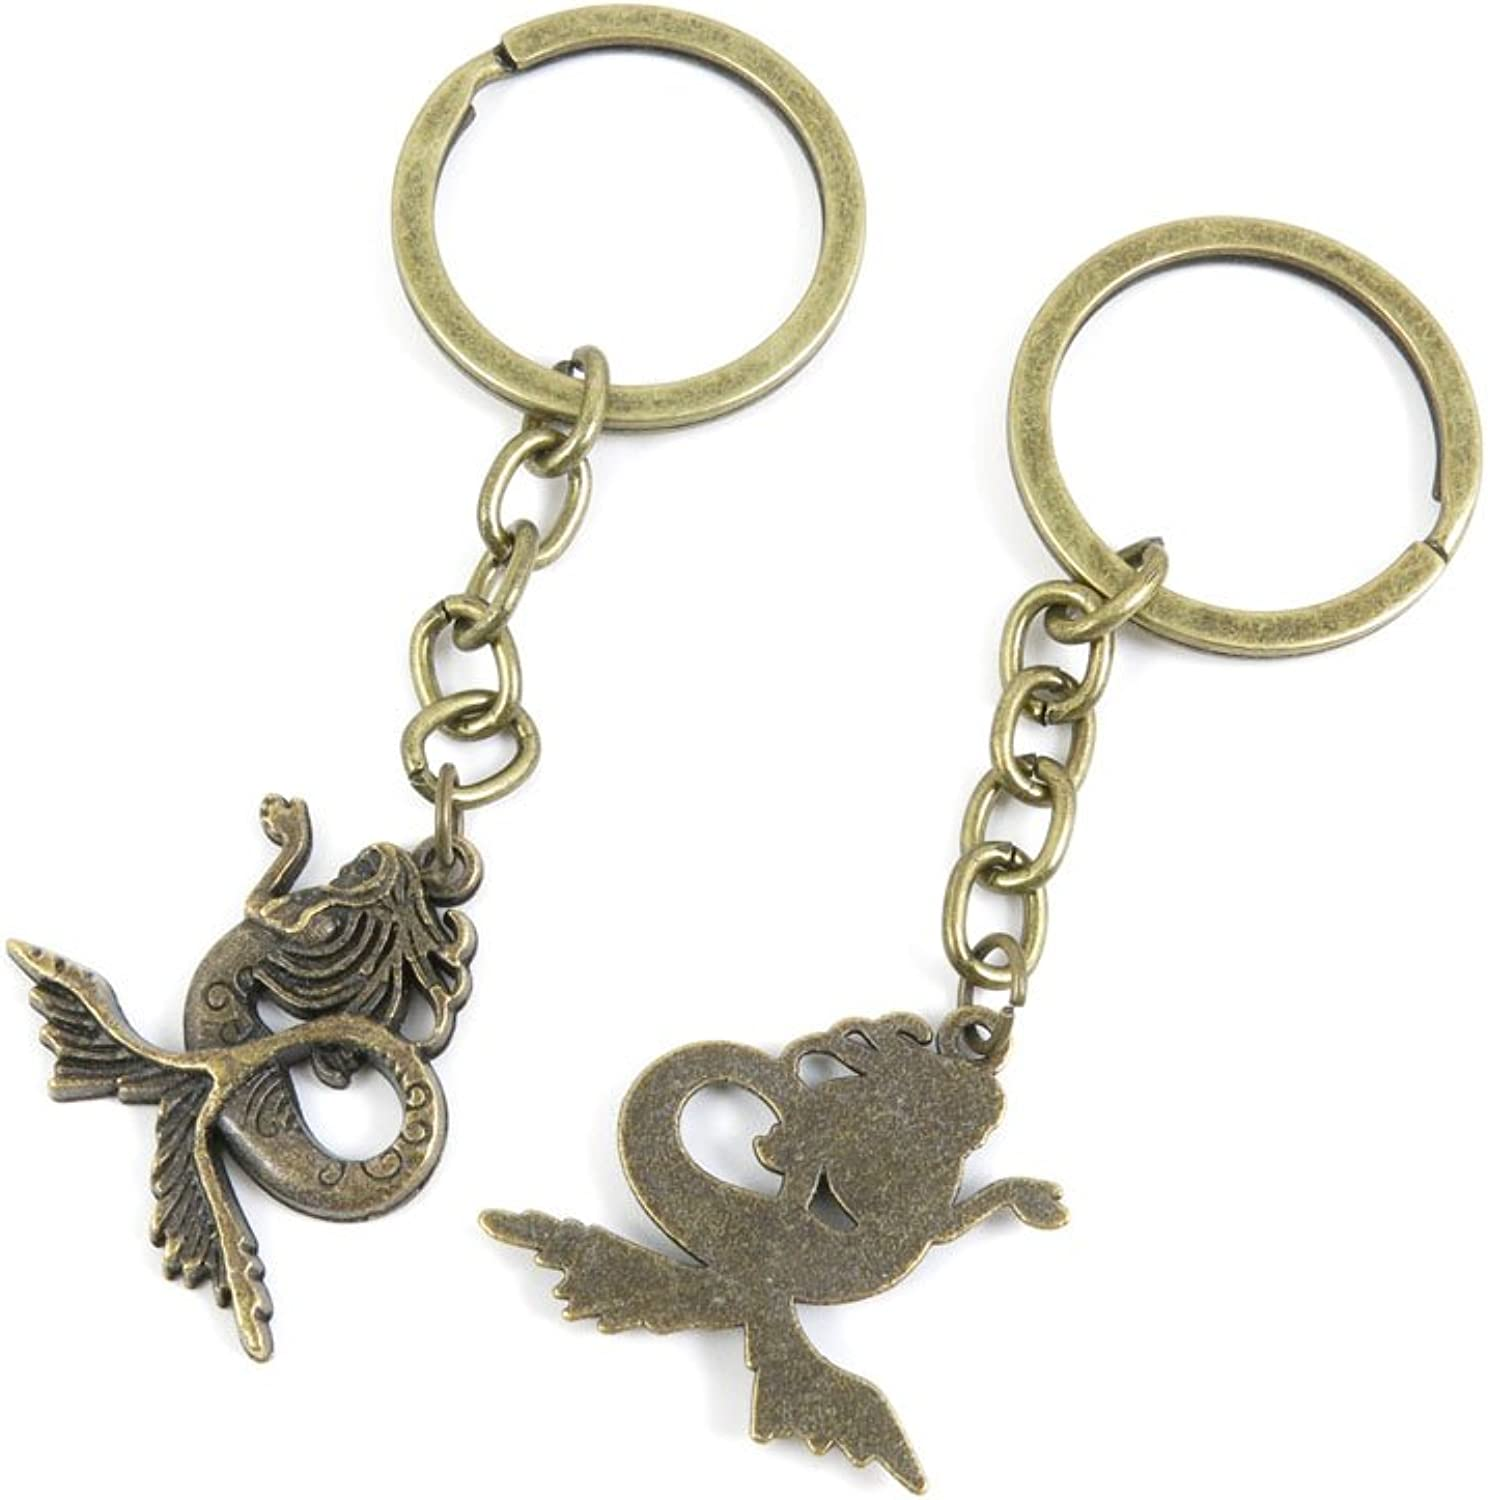 100 PCS Keyrings Keychains Key Ring Chains Tags Jewelry Findings Clasps Buckles Supplies R8KT0 Mermaid